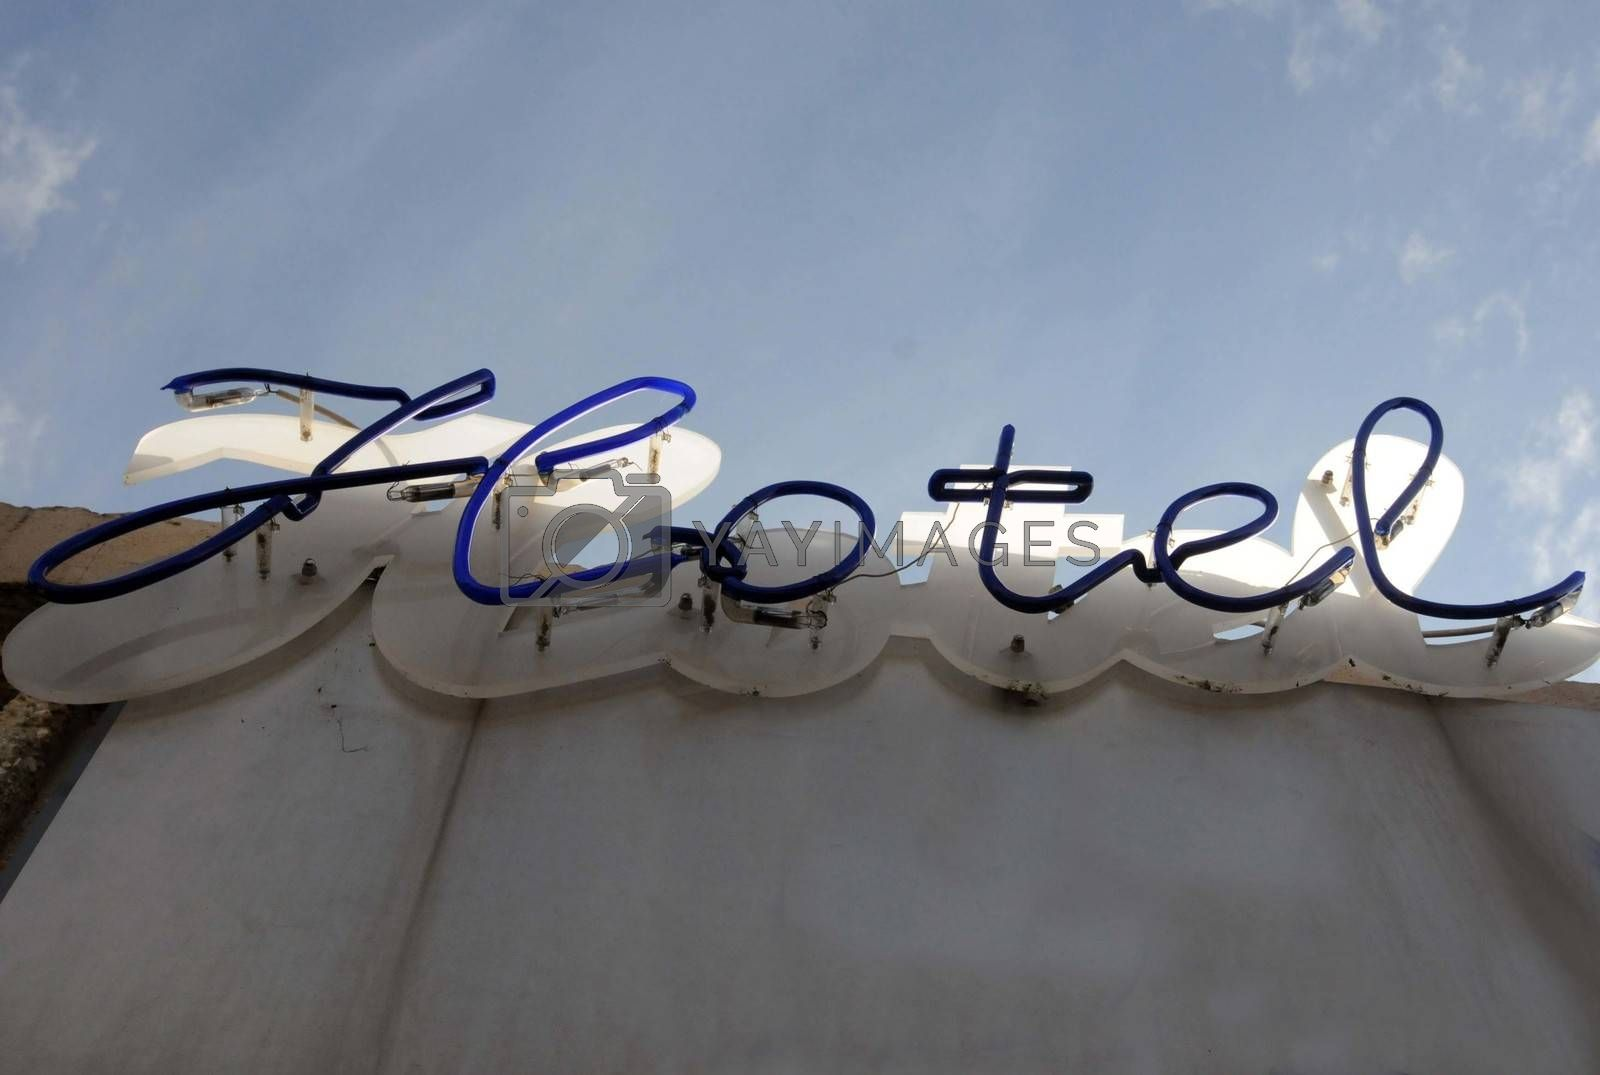 a Hotel sign on a wall with blue sky in the background